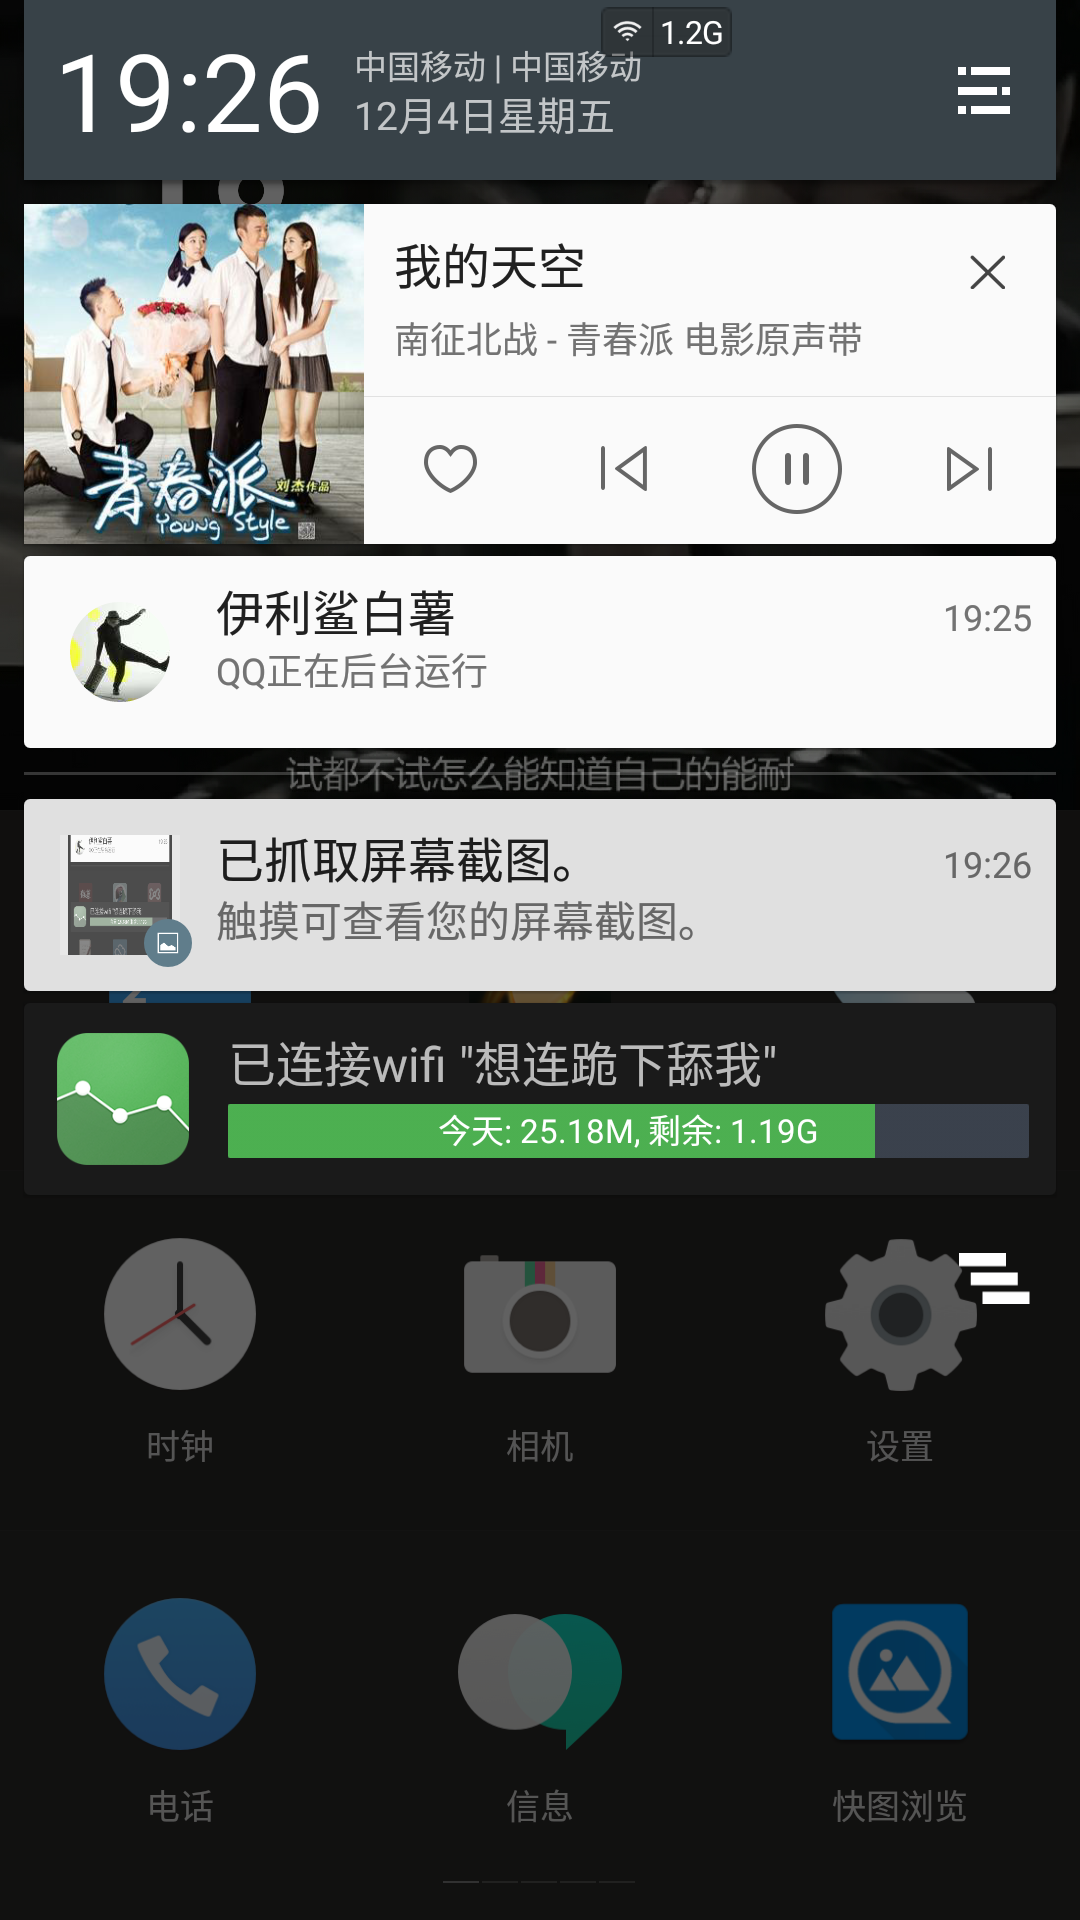 Screenshot_2015-12-04-19-26-45.png